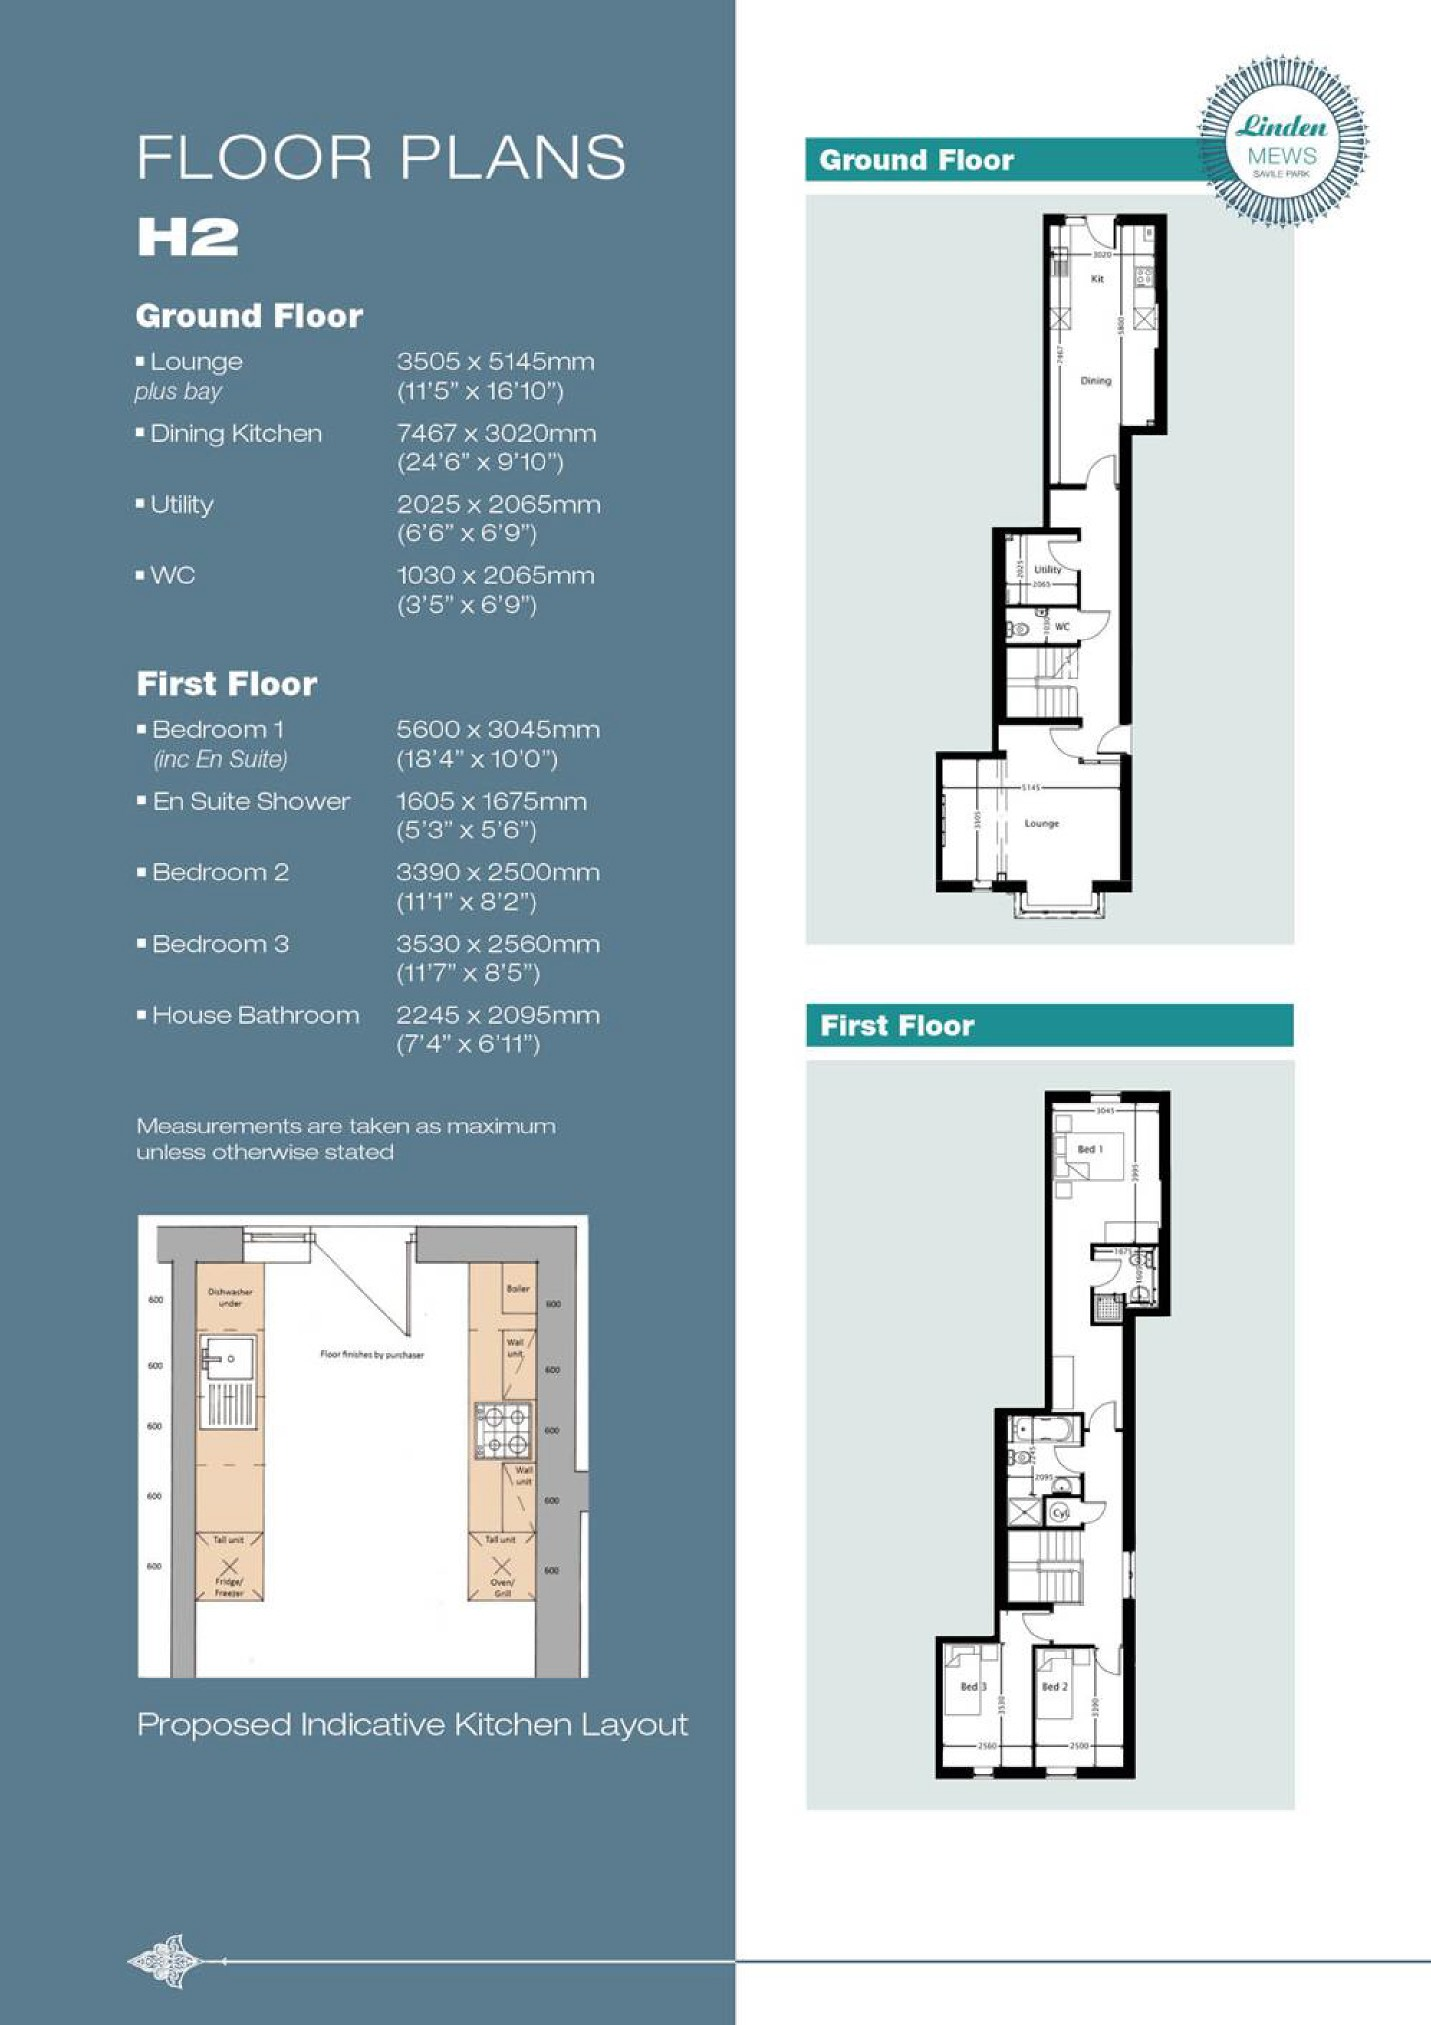 Property details bramleys the property professionals for 15 bruyeres mews floor plans